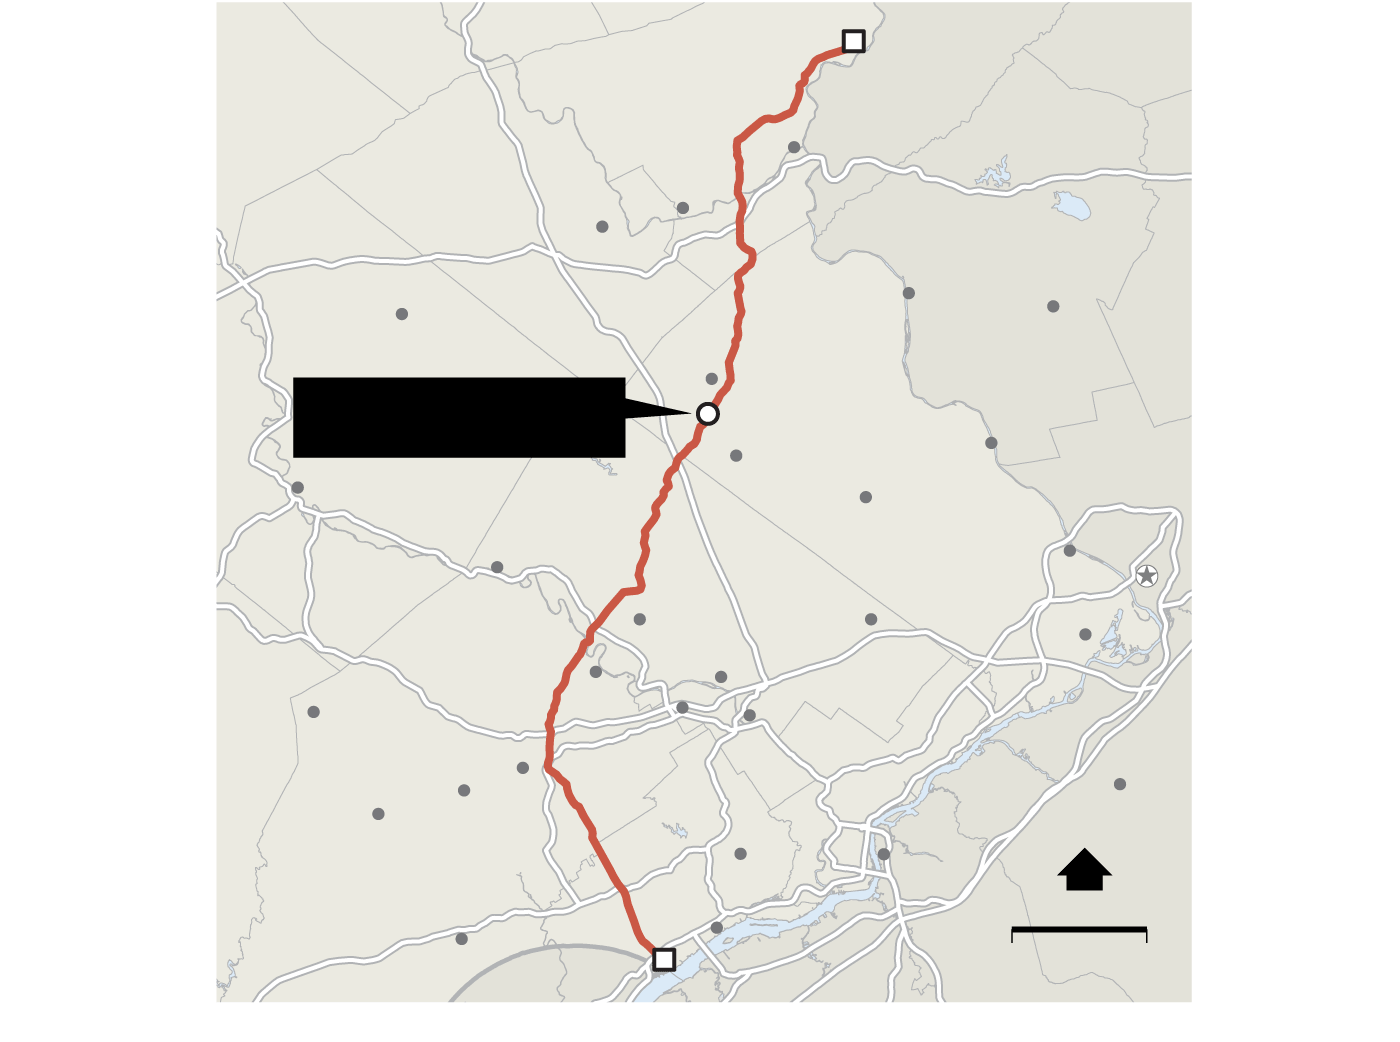 Delaware County pipeline study finds risk less than fatal